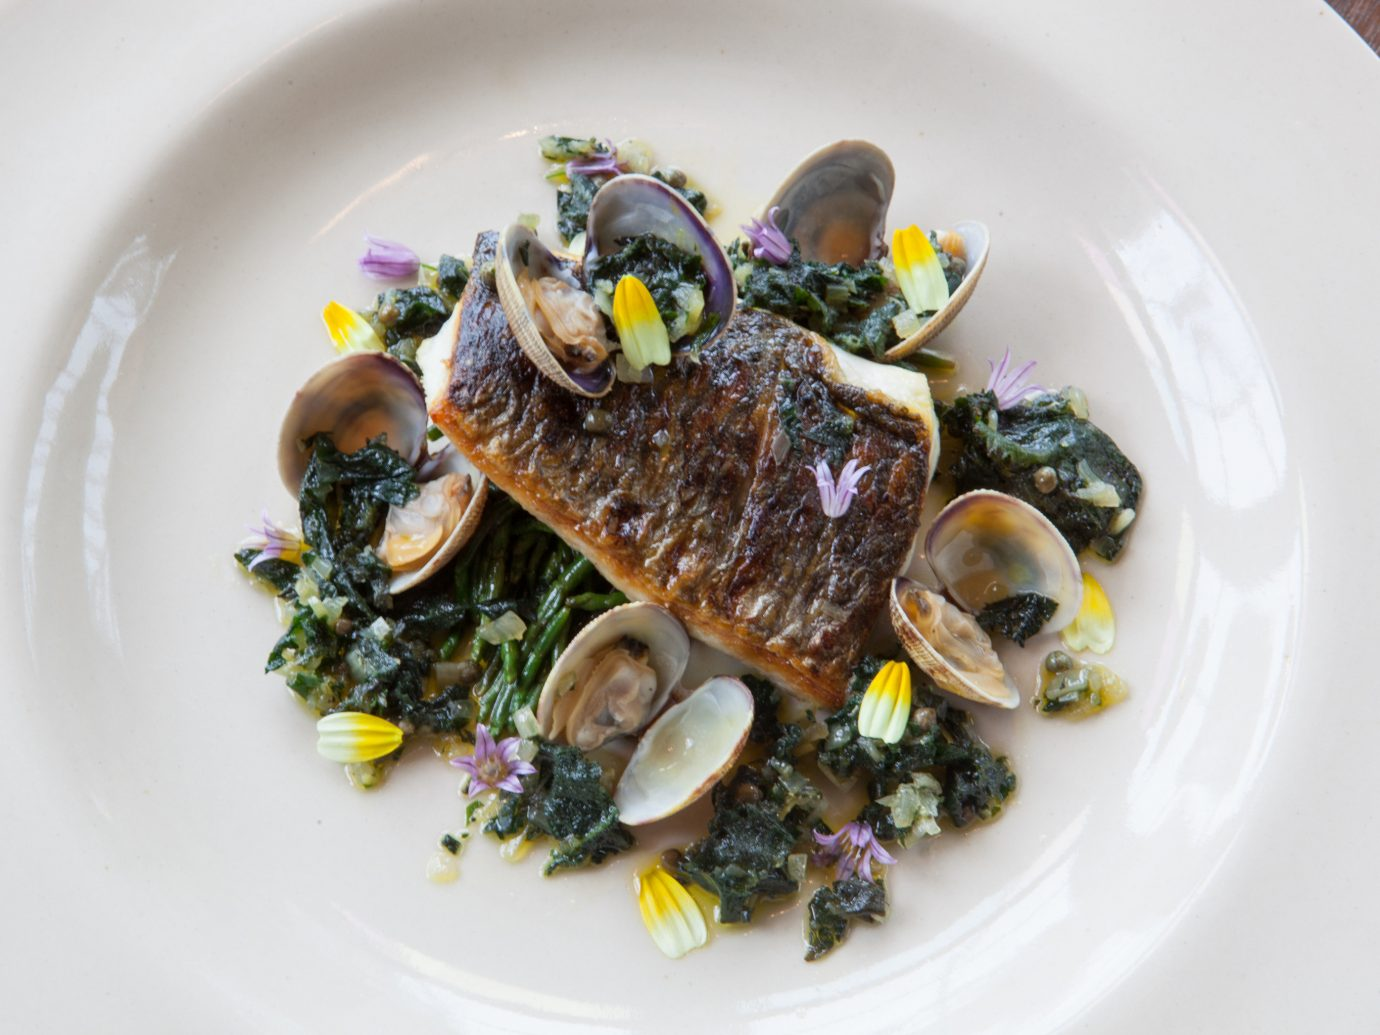 plate Trip Ideas food table white dish mussel produce fish vegetable cuisine Seafood meal meat dinner containing piece de resistance